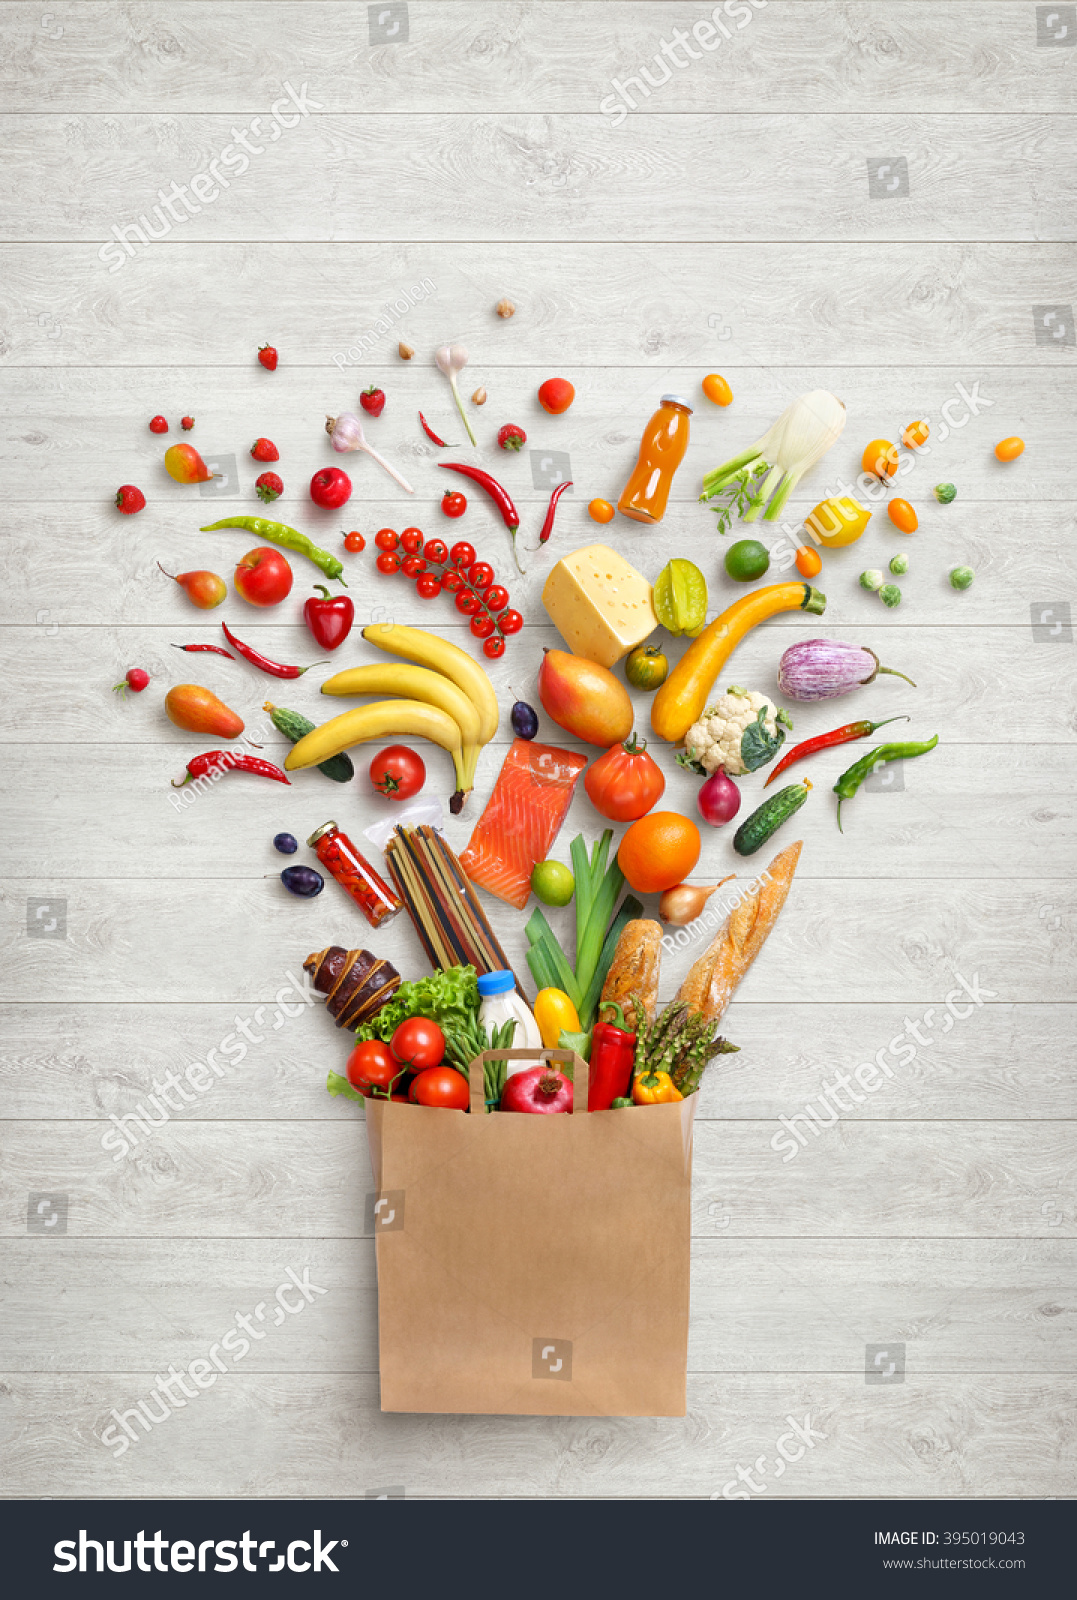 Food background studio photo of different fruits and vegetables - Healthy Food In Package Studio Photography Of Different Fruits And Vegetables On White Wooden Background